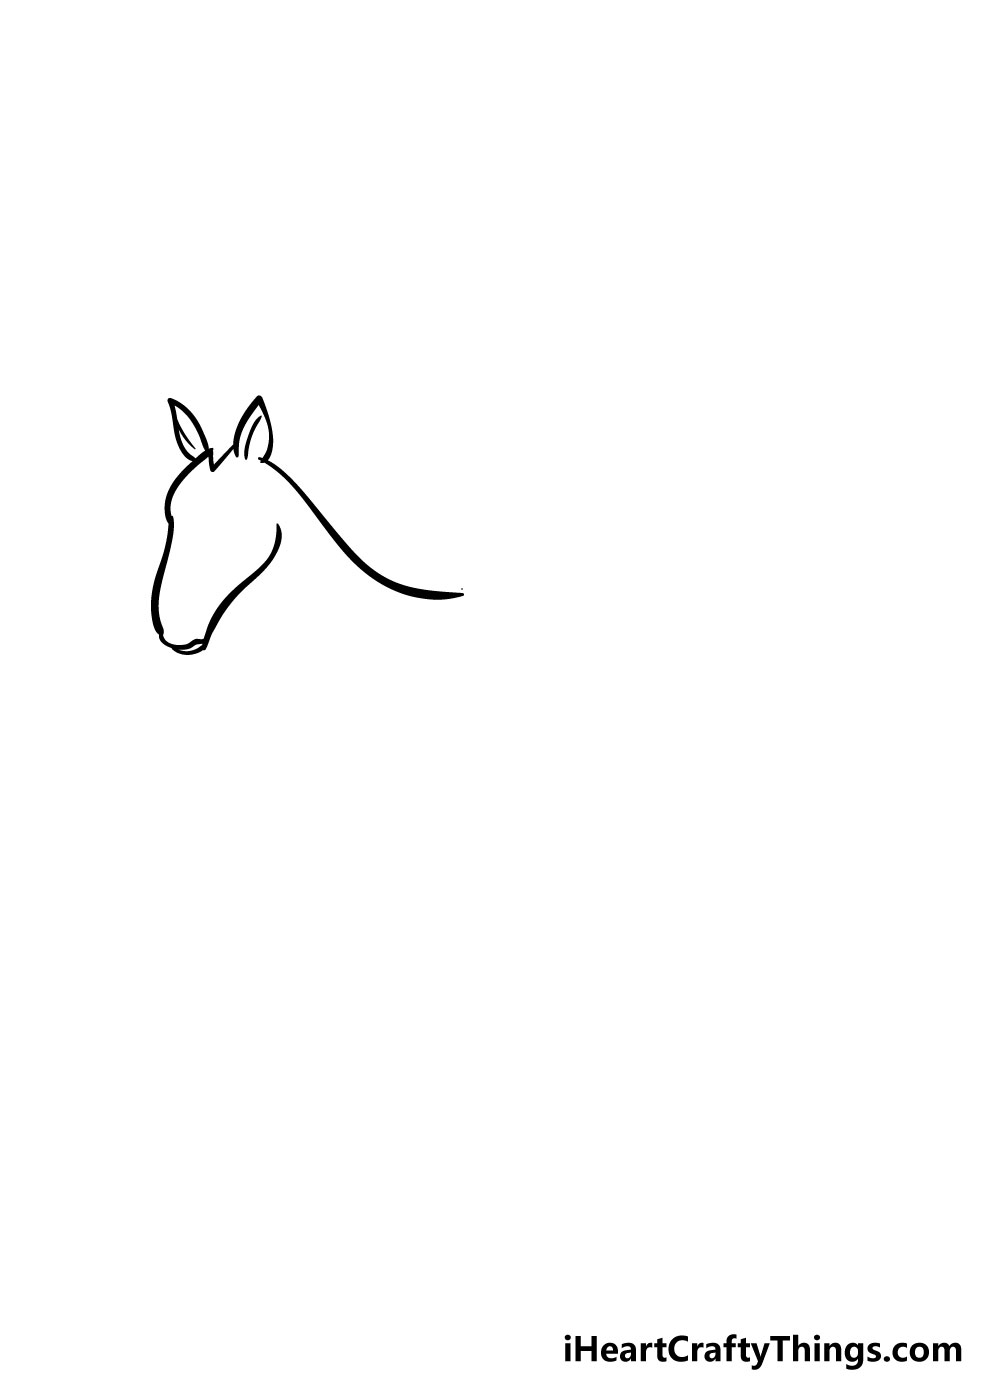 horse drawing step 1